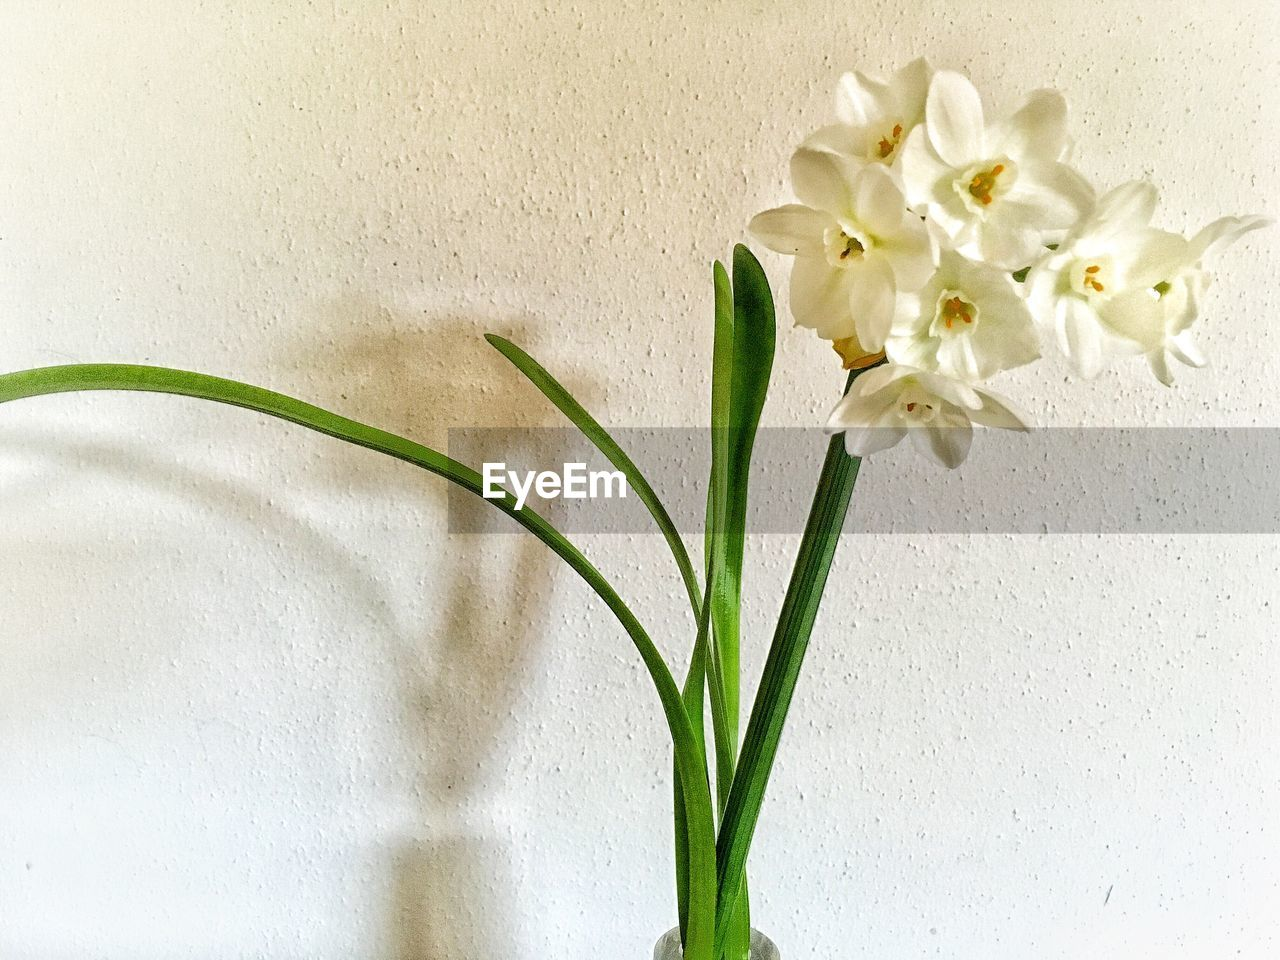 flower, flower head, petal, white color, growth, fragility, freshness, beauty in nature, vase, green color, nature, springtime, no people, close-up, plant, indoors, day